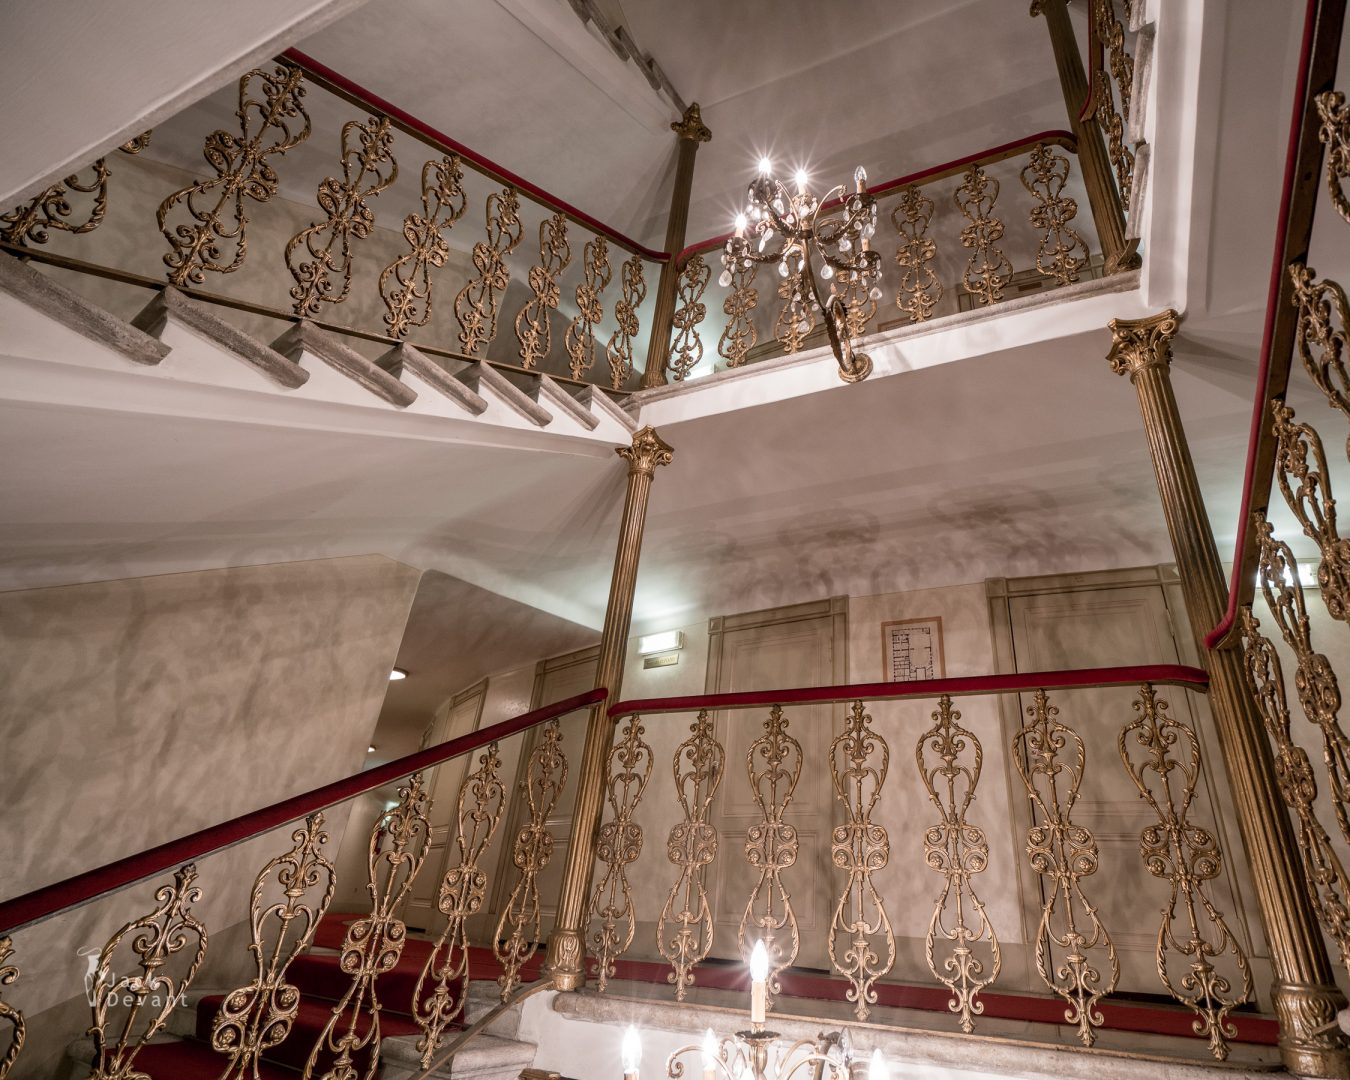 The Teatro Lirico Giuseppe Verdi stairs to galleries